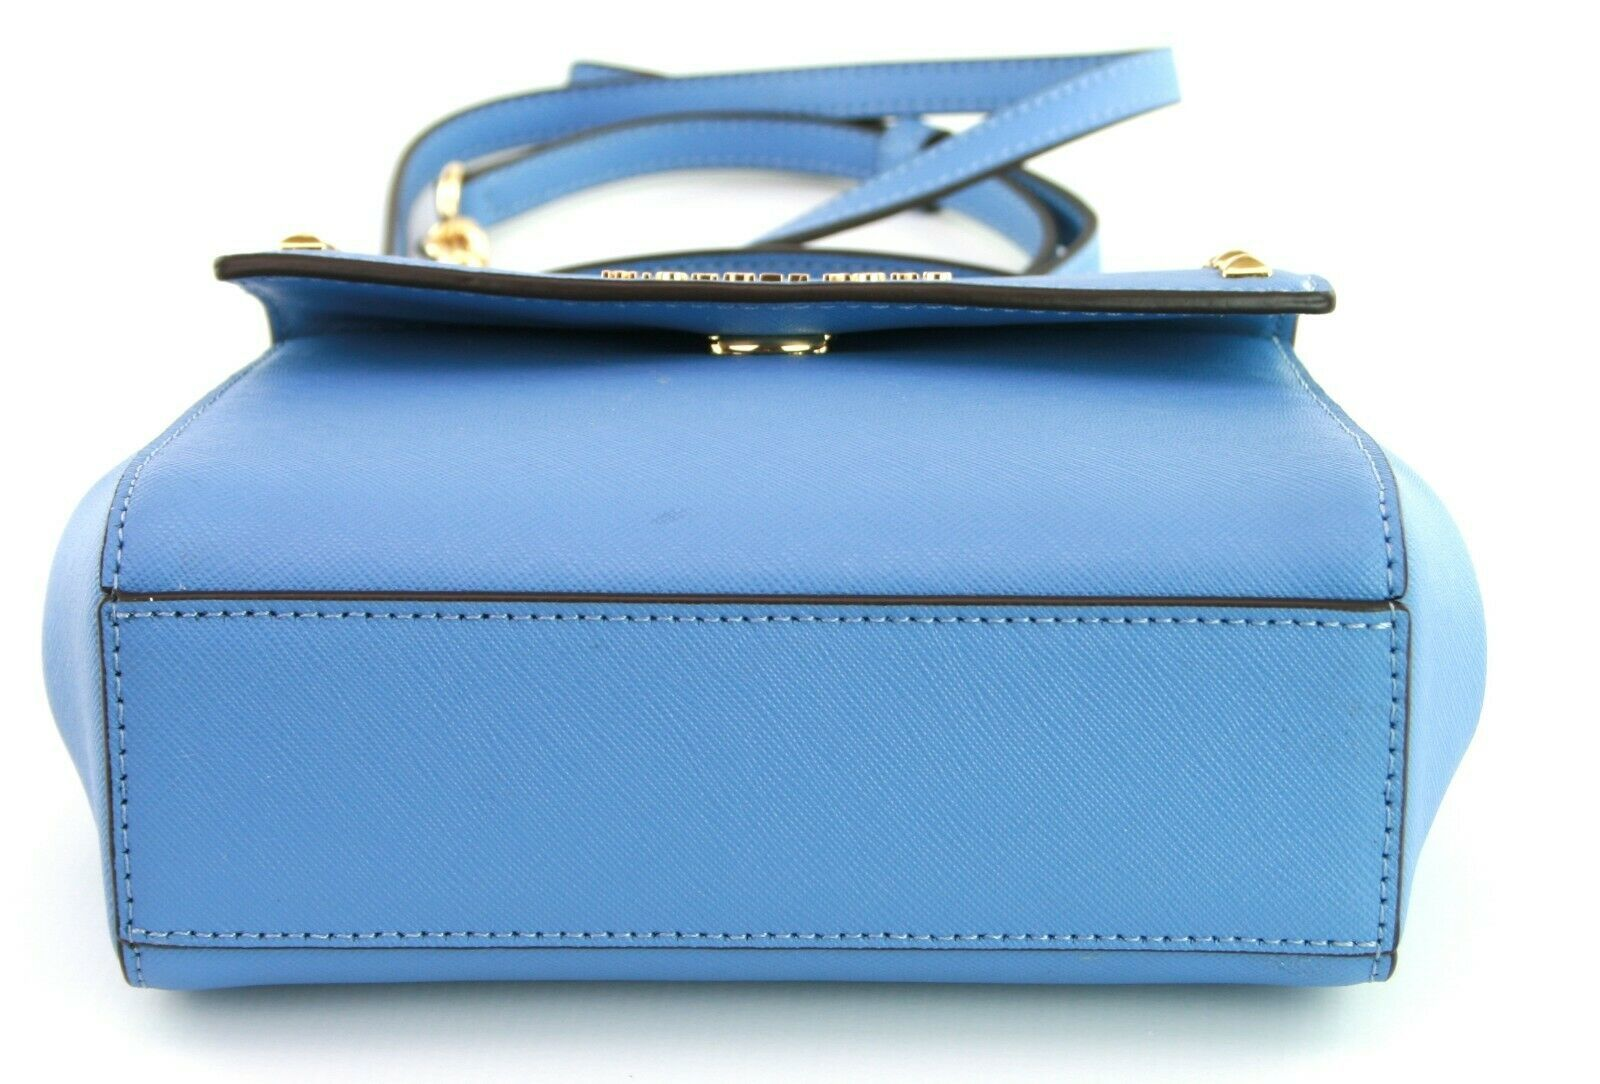 Michael Kors Cross Body Bag Karla Leather Small Handbag French Blue RRP £200 image 4